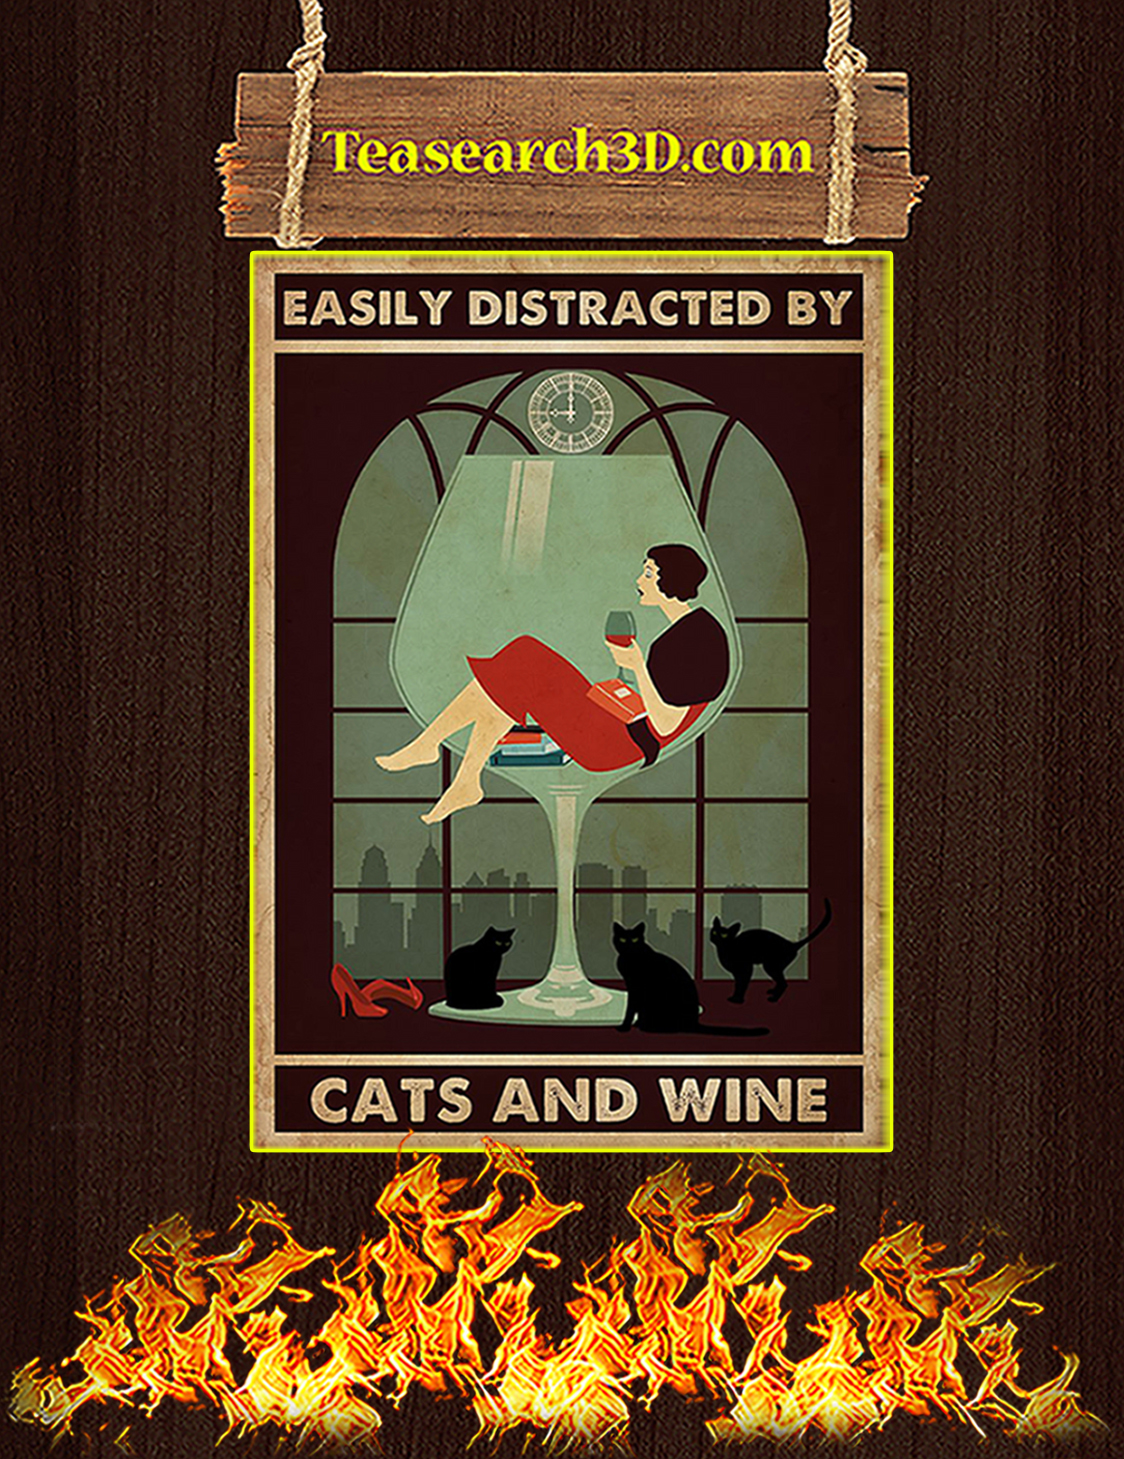 Easily distracted by cats and wine poster A3